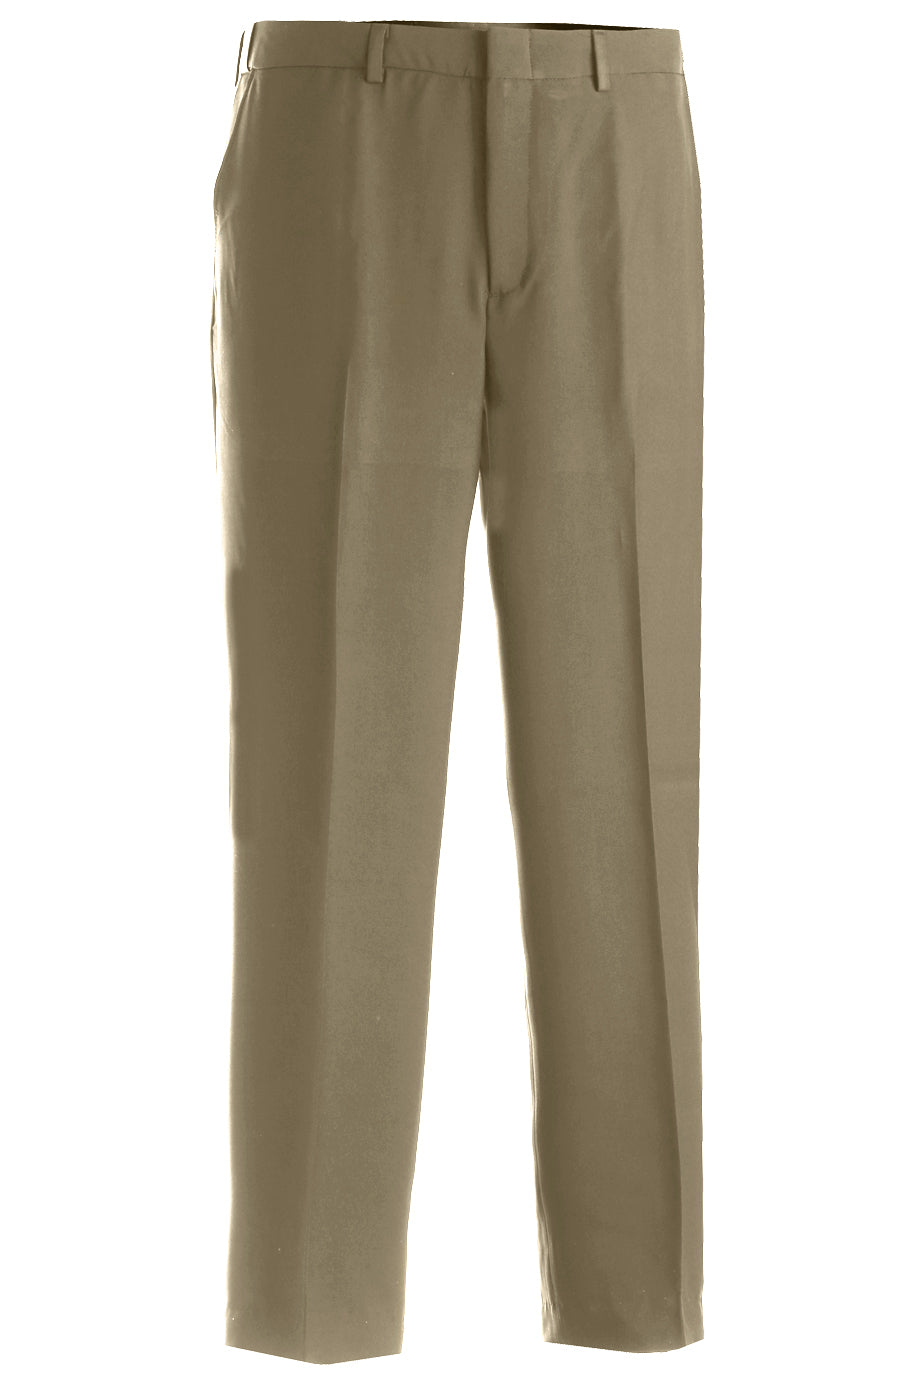 Edwards Mens Intaglio Flat Front Easy Fit Pant - Khaki